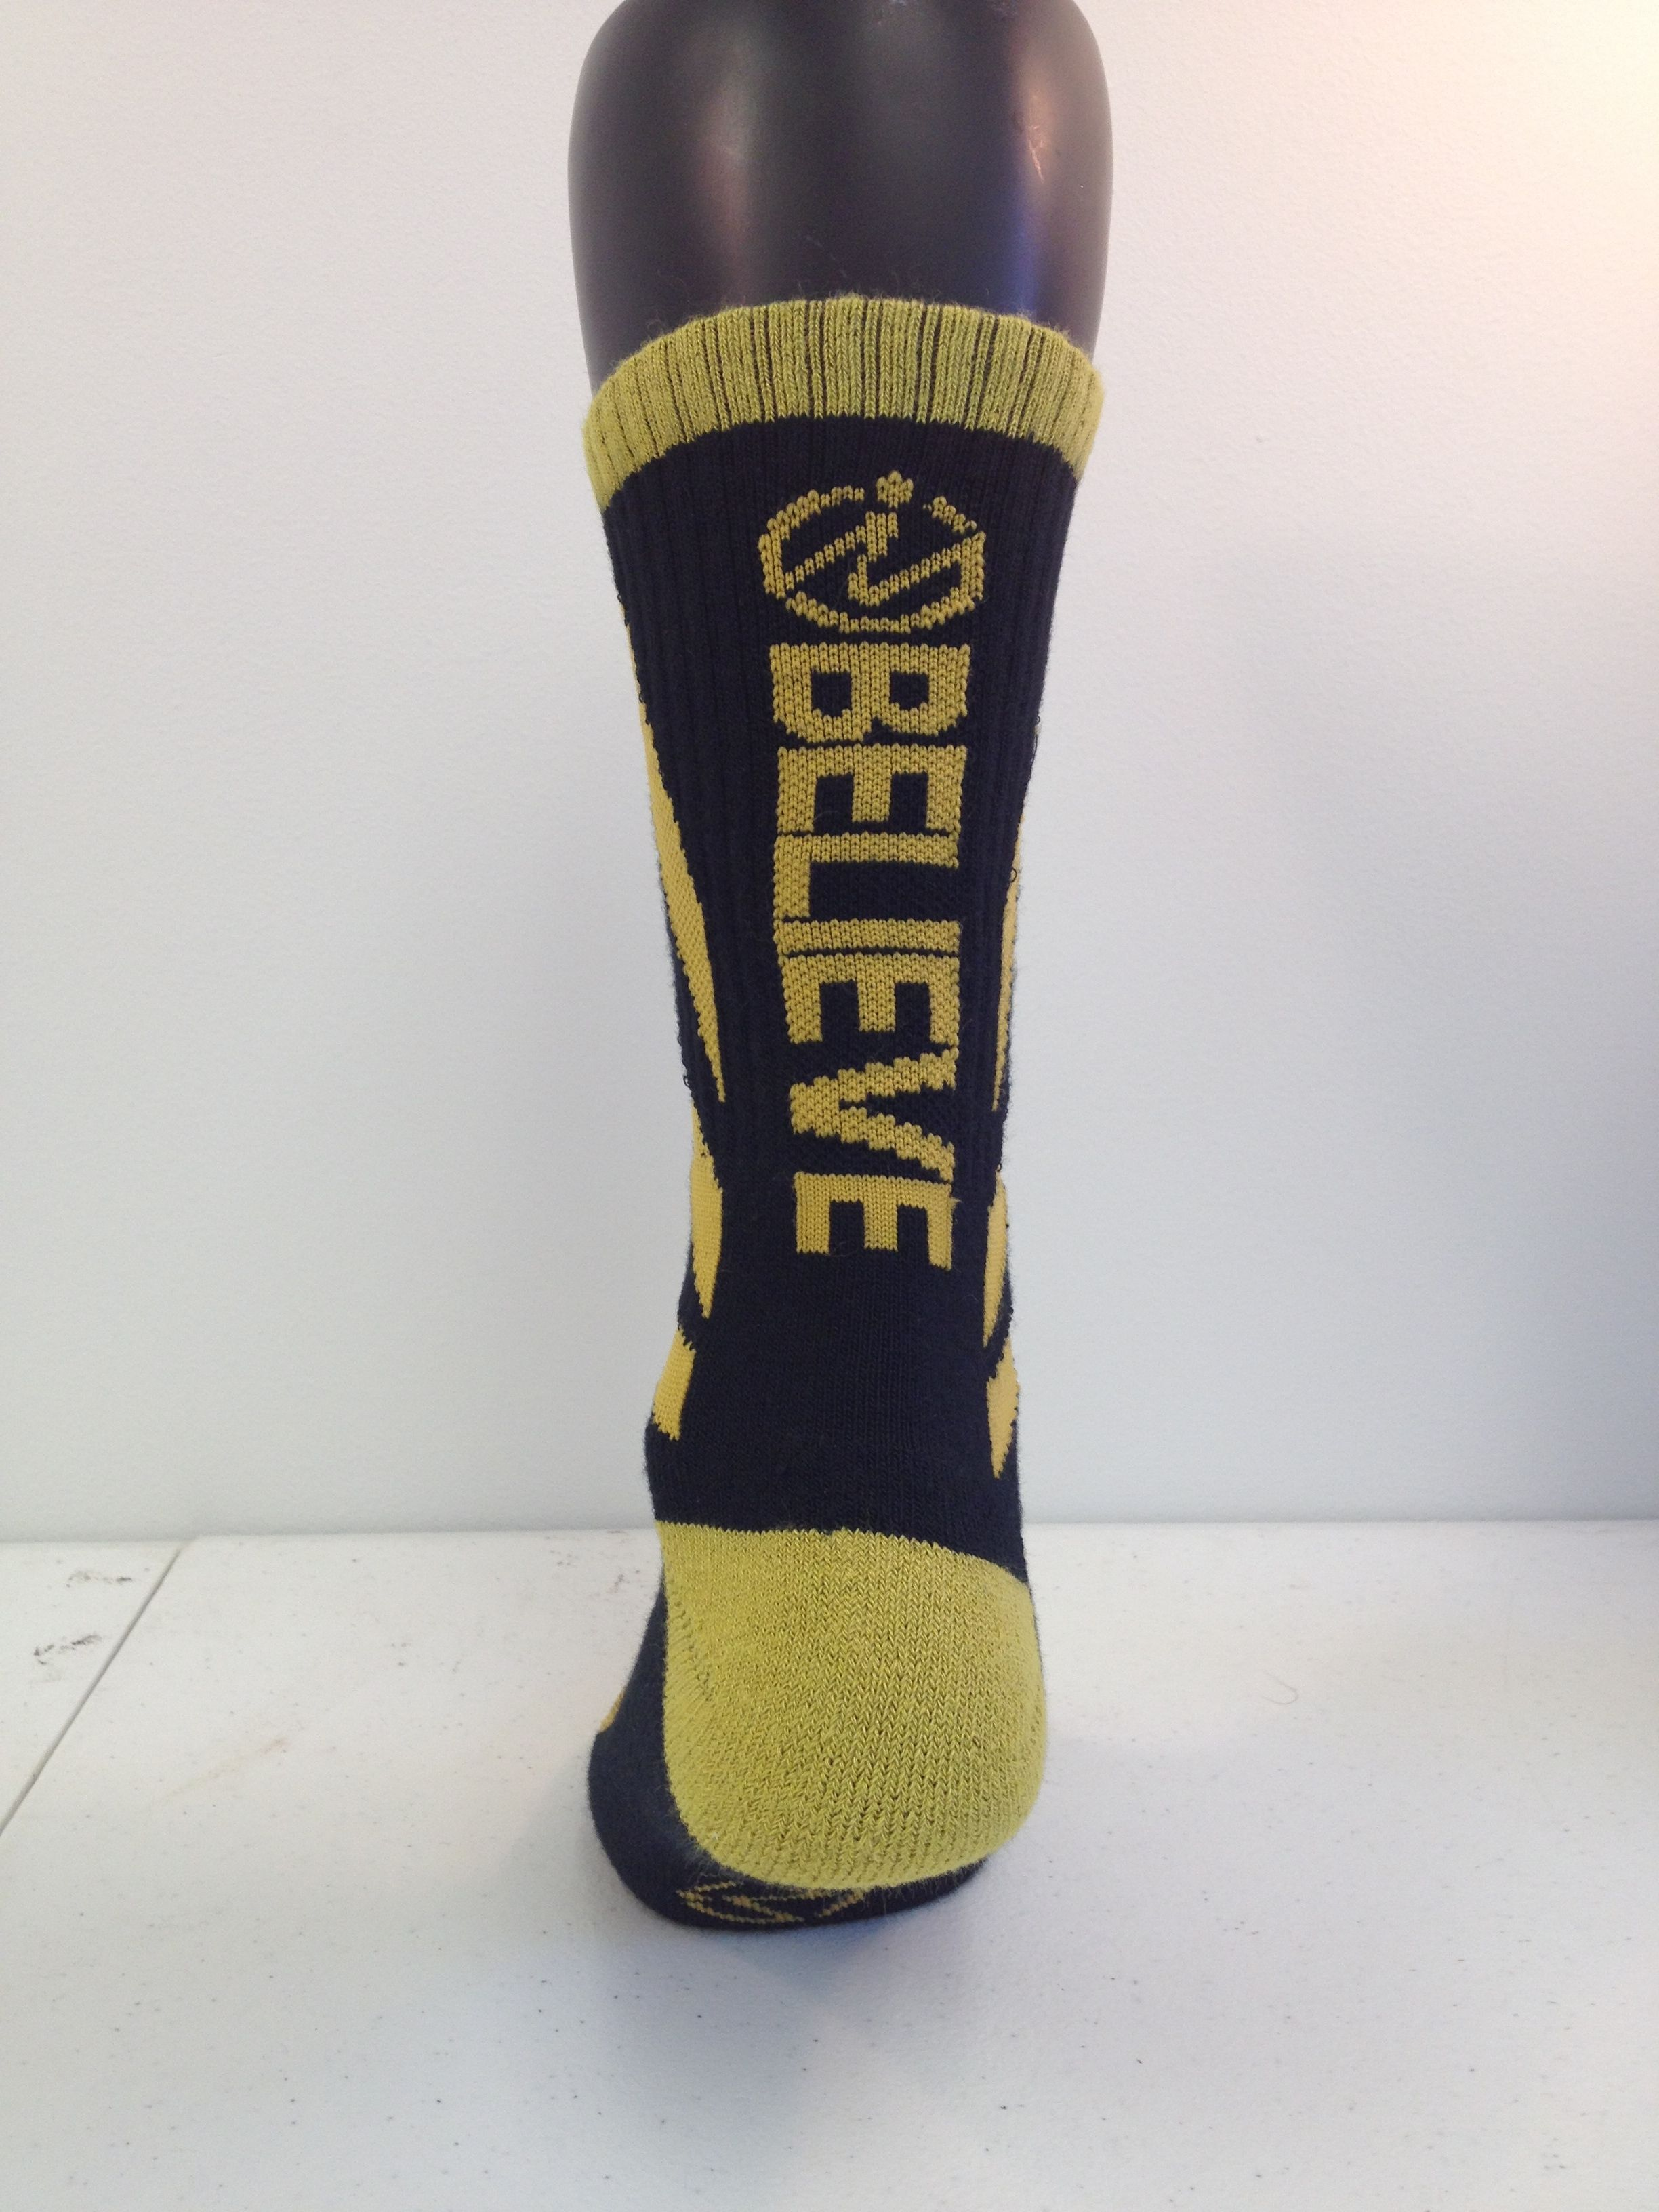 """Believe"" socks from inspyr sock co. These socks were made for childhood cancer month, Sept. Black and Gold represent the awareness colors"